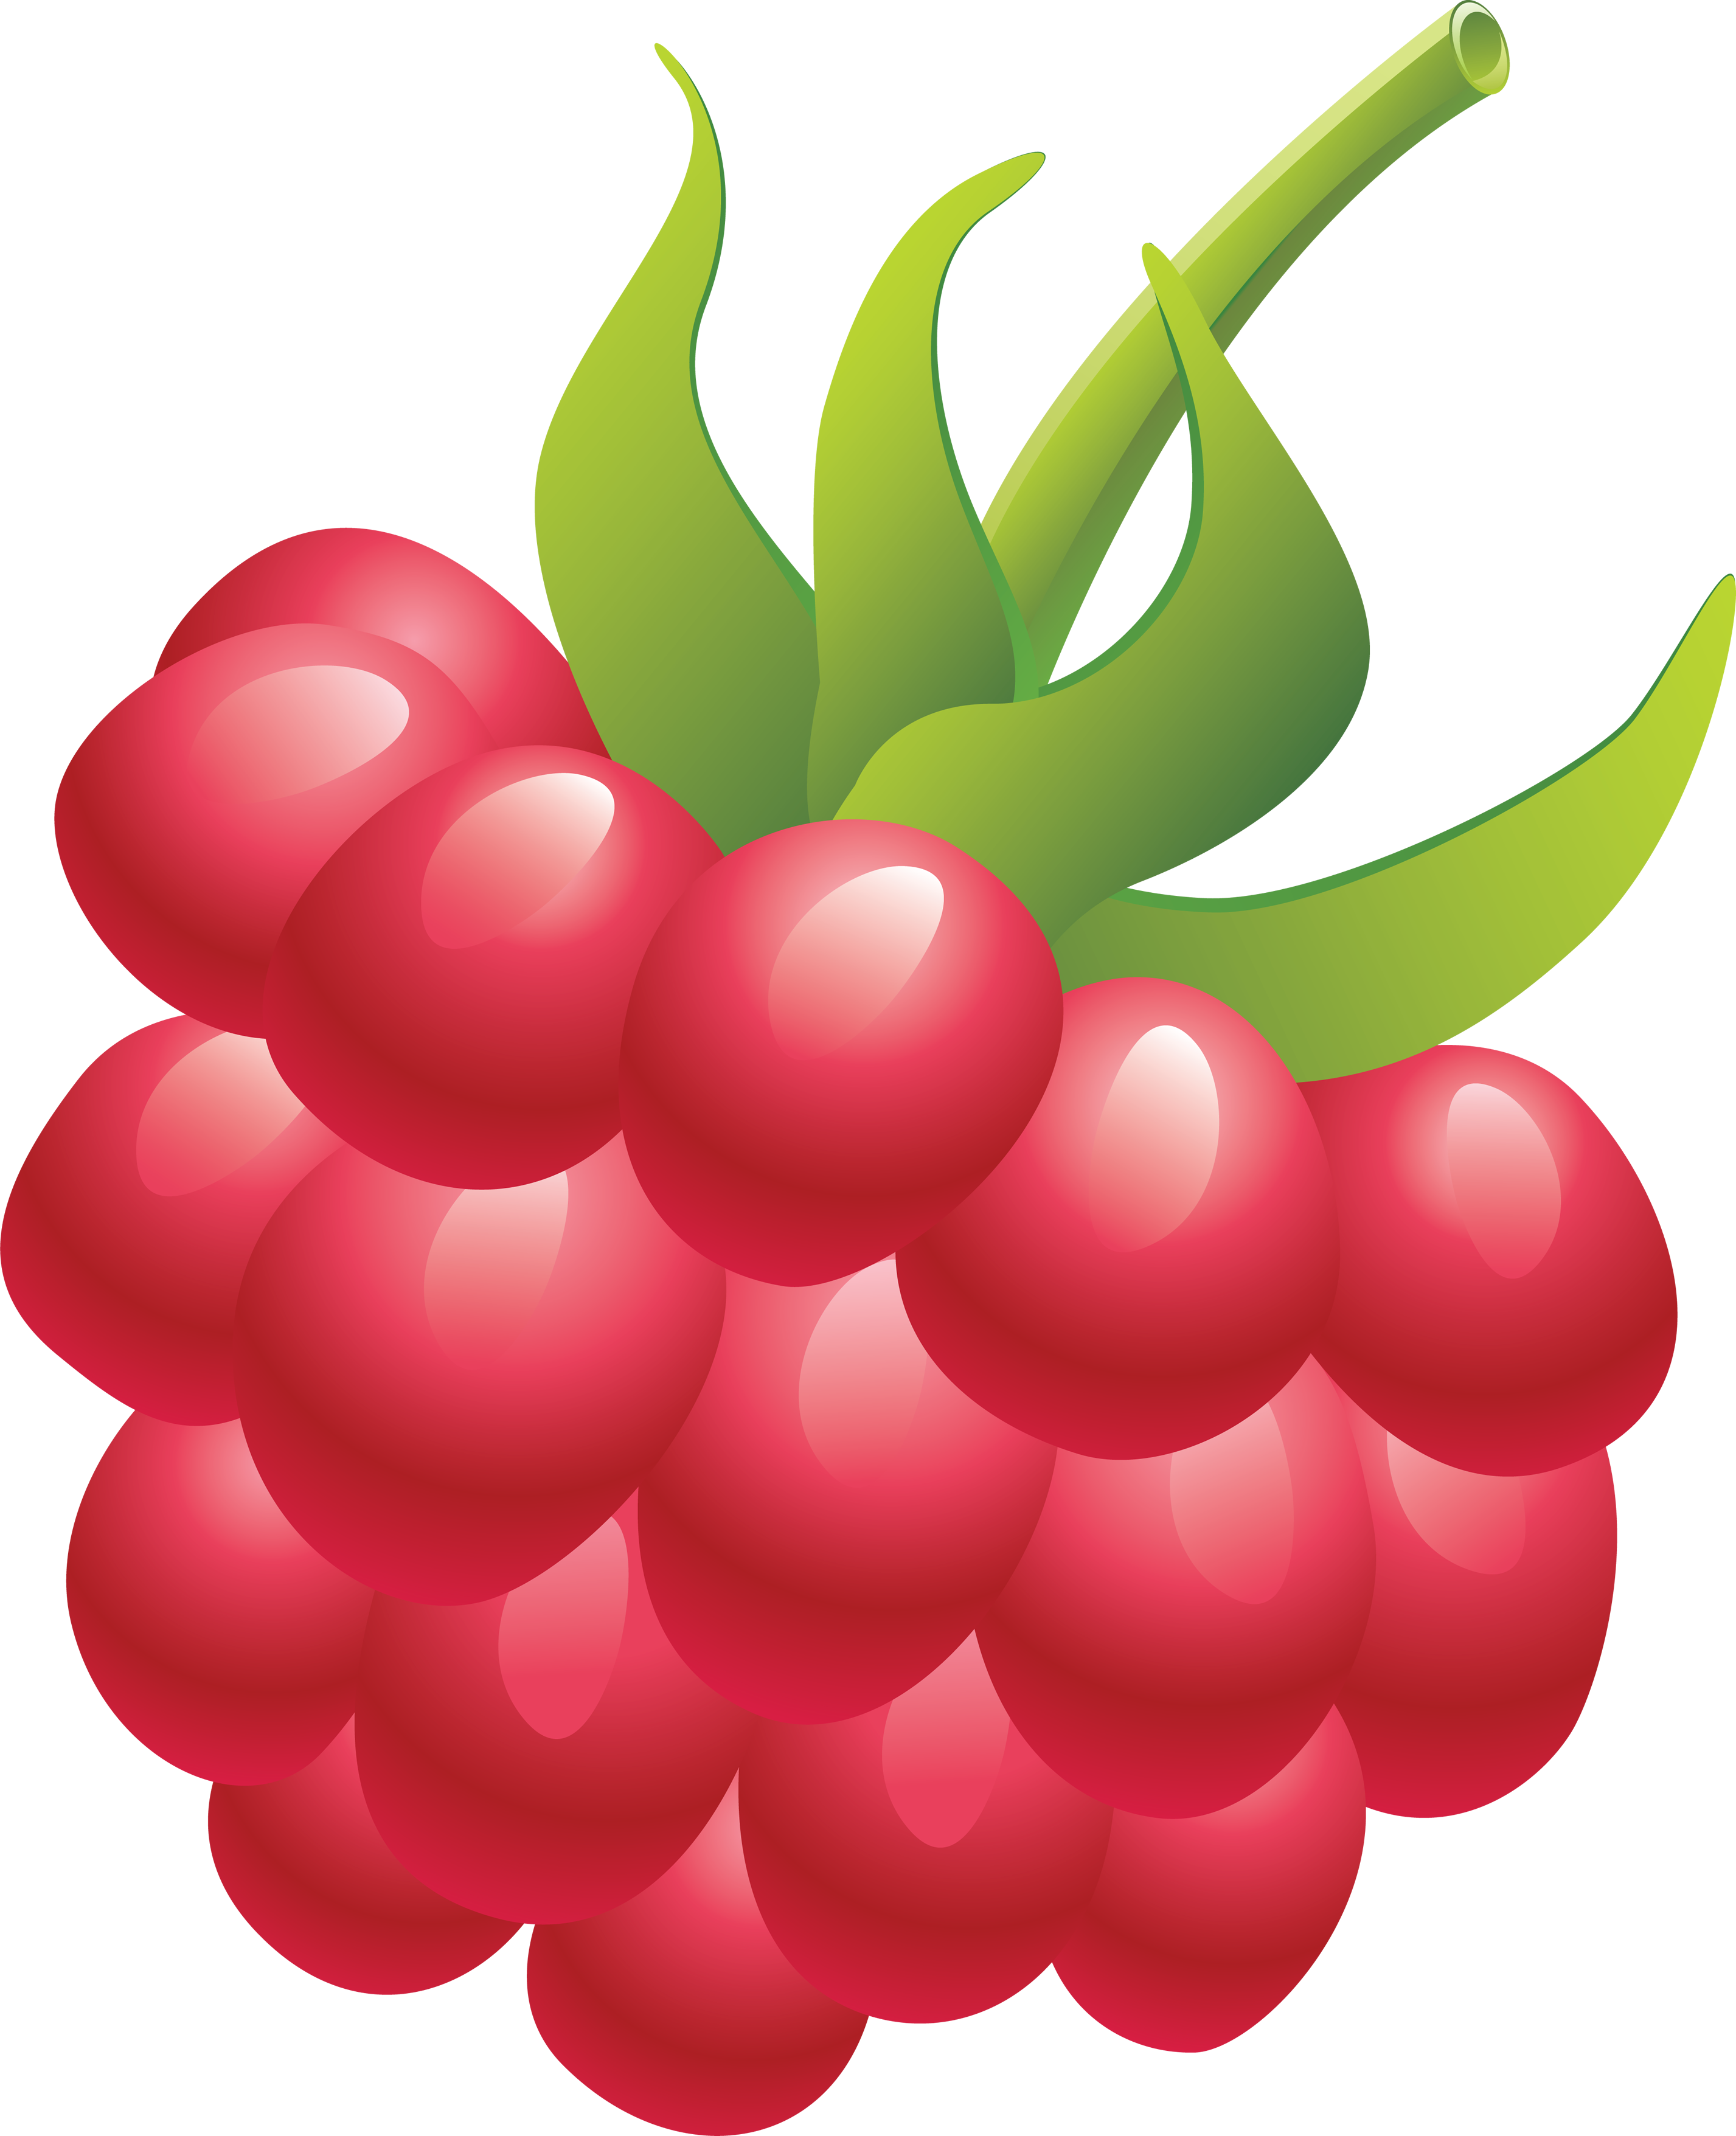 Raspberry clipart #7, Download drawings